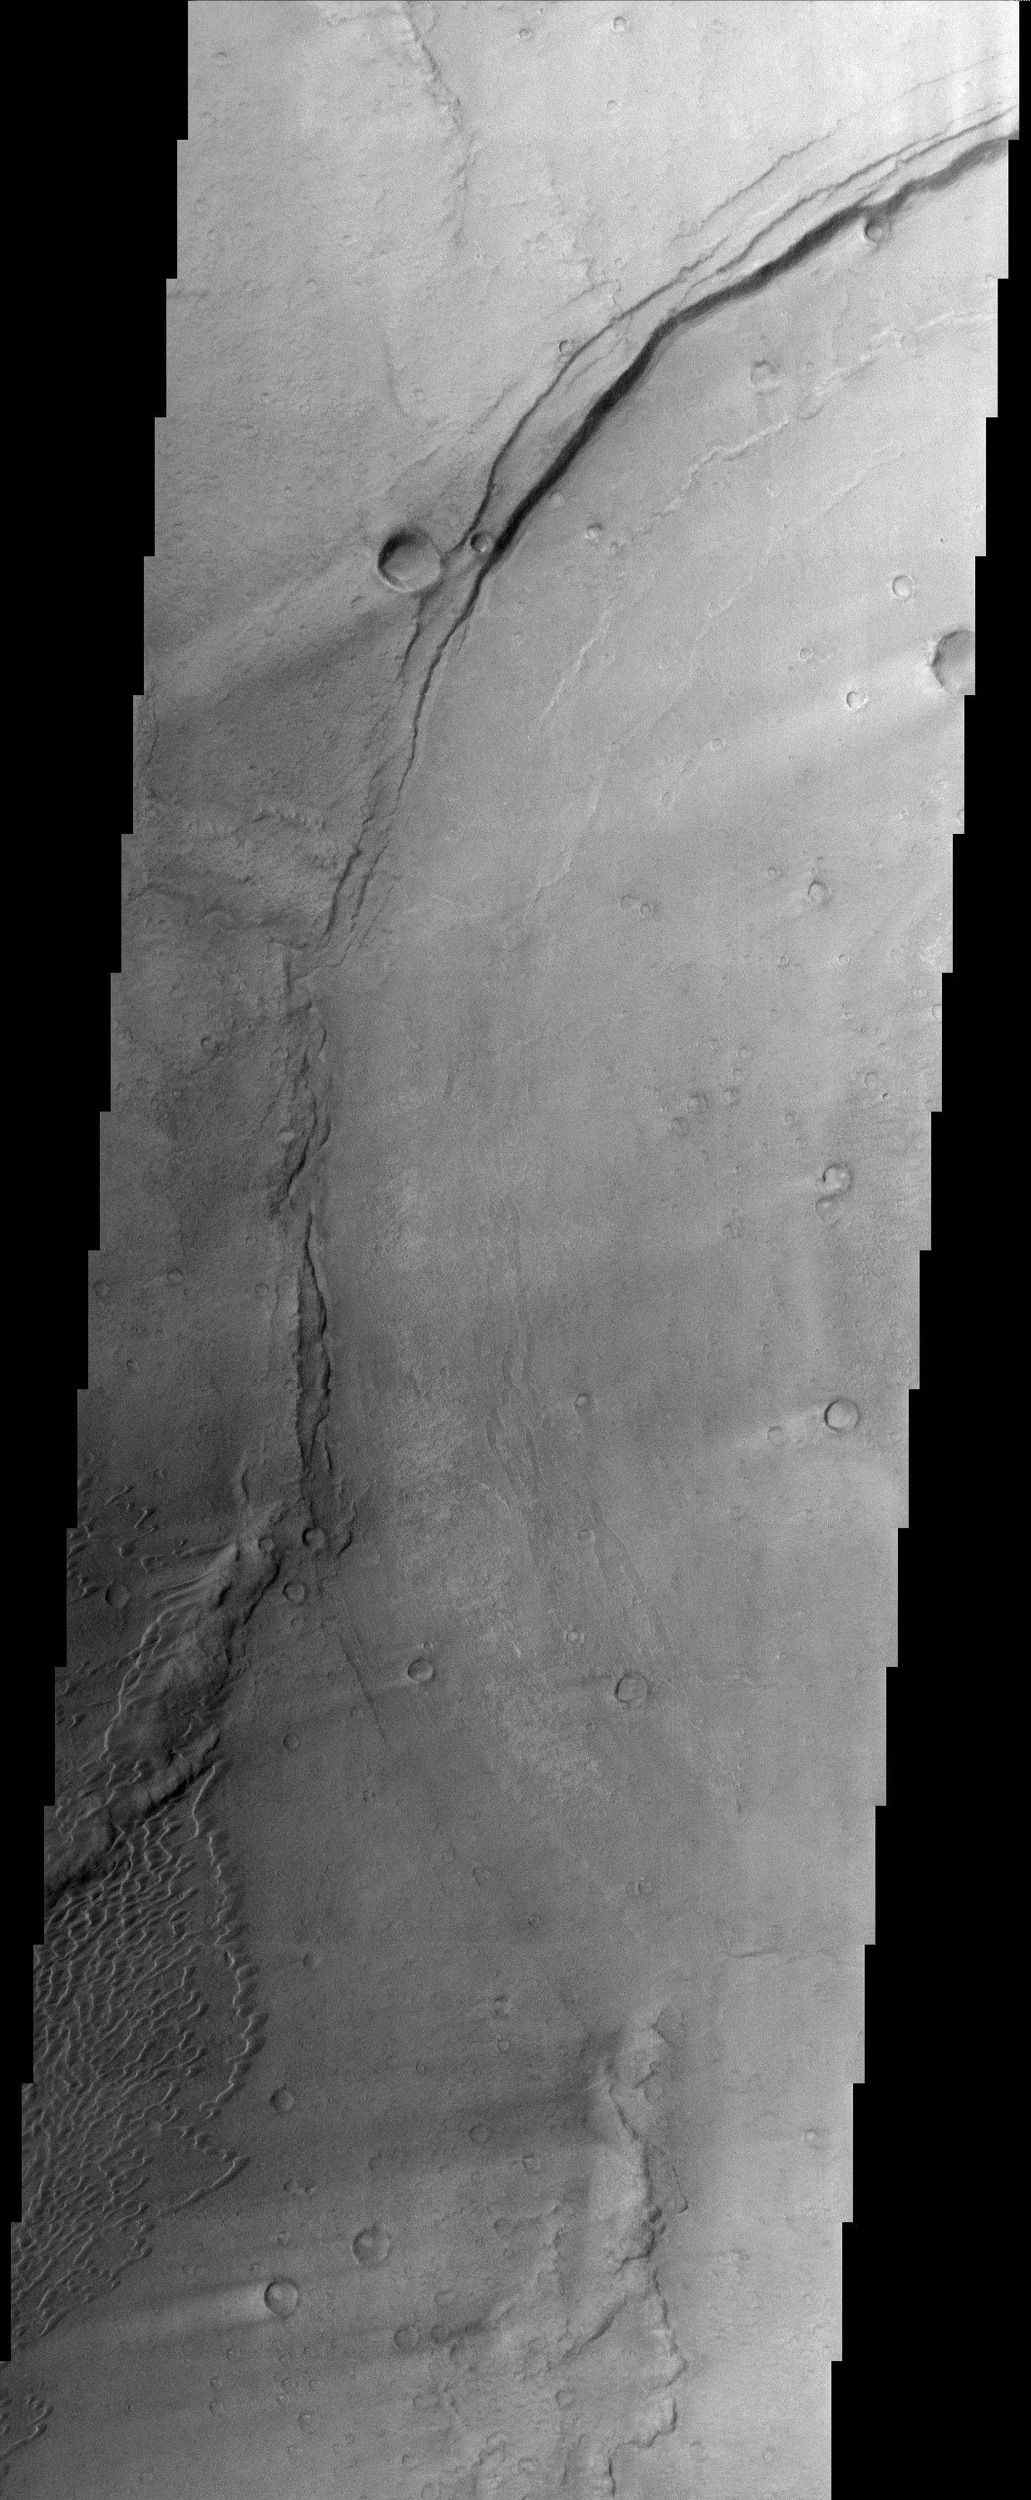 This image from NASA's Mars Odyssey is located in Meroe Patera, which is a small region within Syrtis Major Planitia. Syrtis Major is a low-relief shield volcano whose lava flows make up a plateau more than 1,000 km (about 620 miles) across.